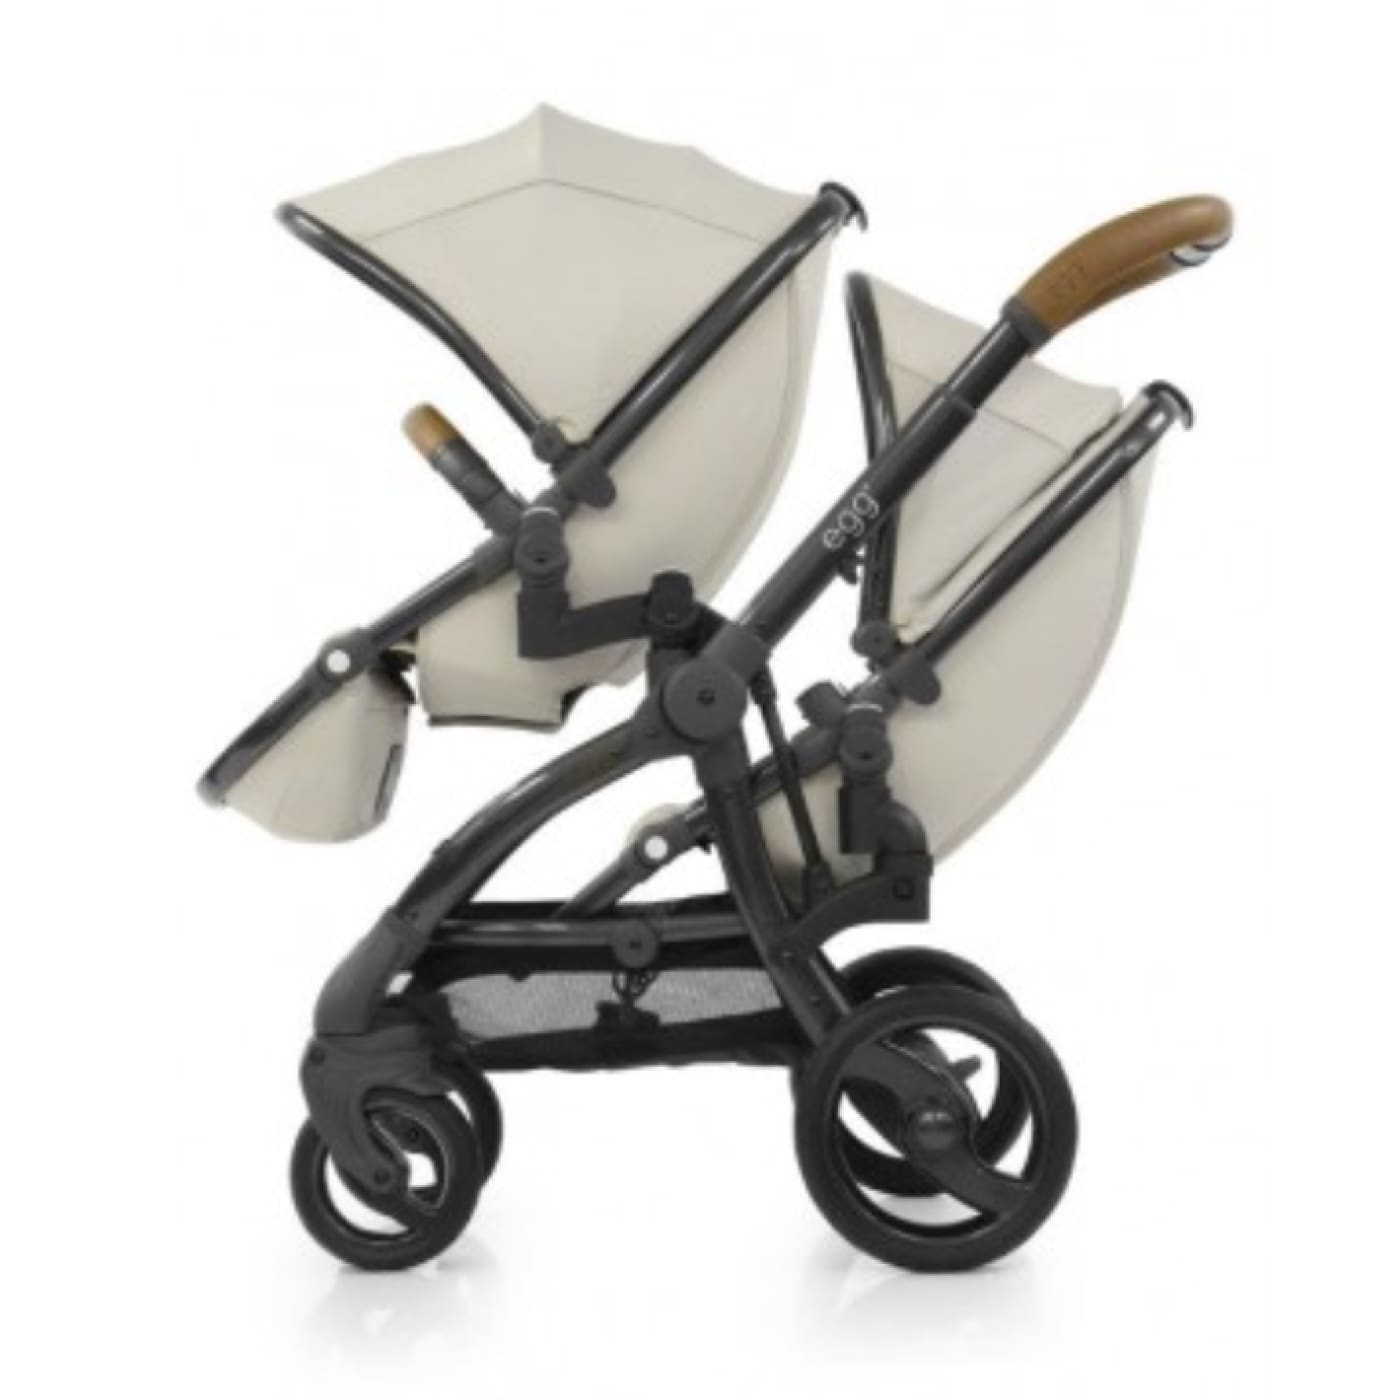 Egg Tandem - Jurassic Cream - PRAMS & STROLLERS - TODDLER SEATS/CONVERSION KITS